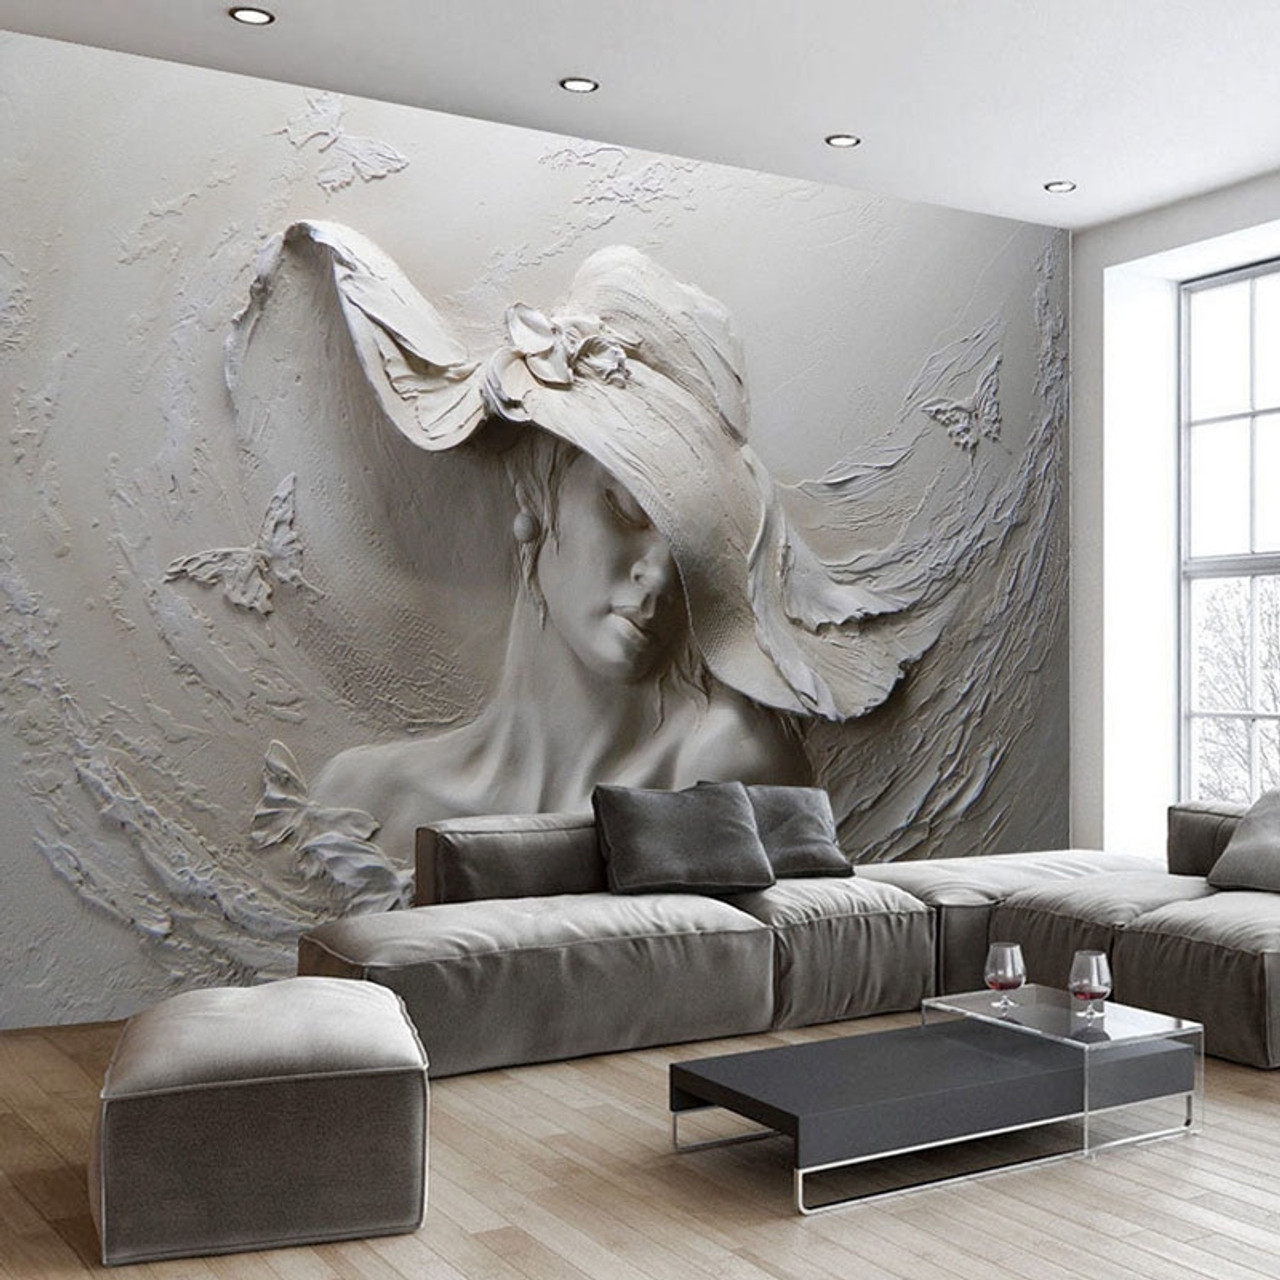 Custom Wallpaper 3d Stereoscopic Embossed Gray Beauty Oil Painting Modern Abstract Art Wall Mural Living Room Bedroom Wallpaper Onshopdeals Com